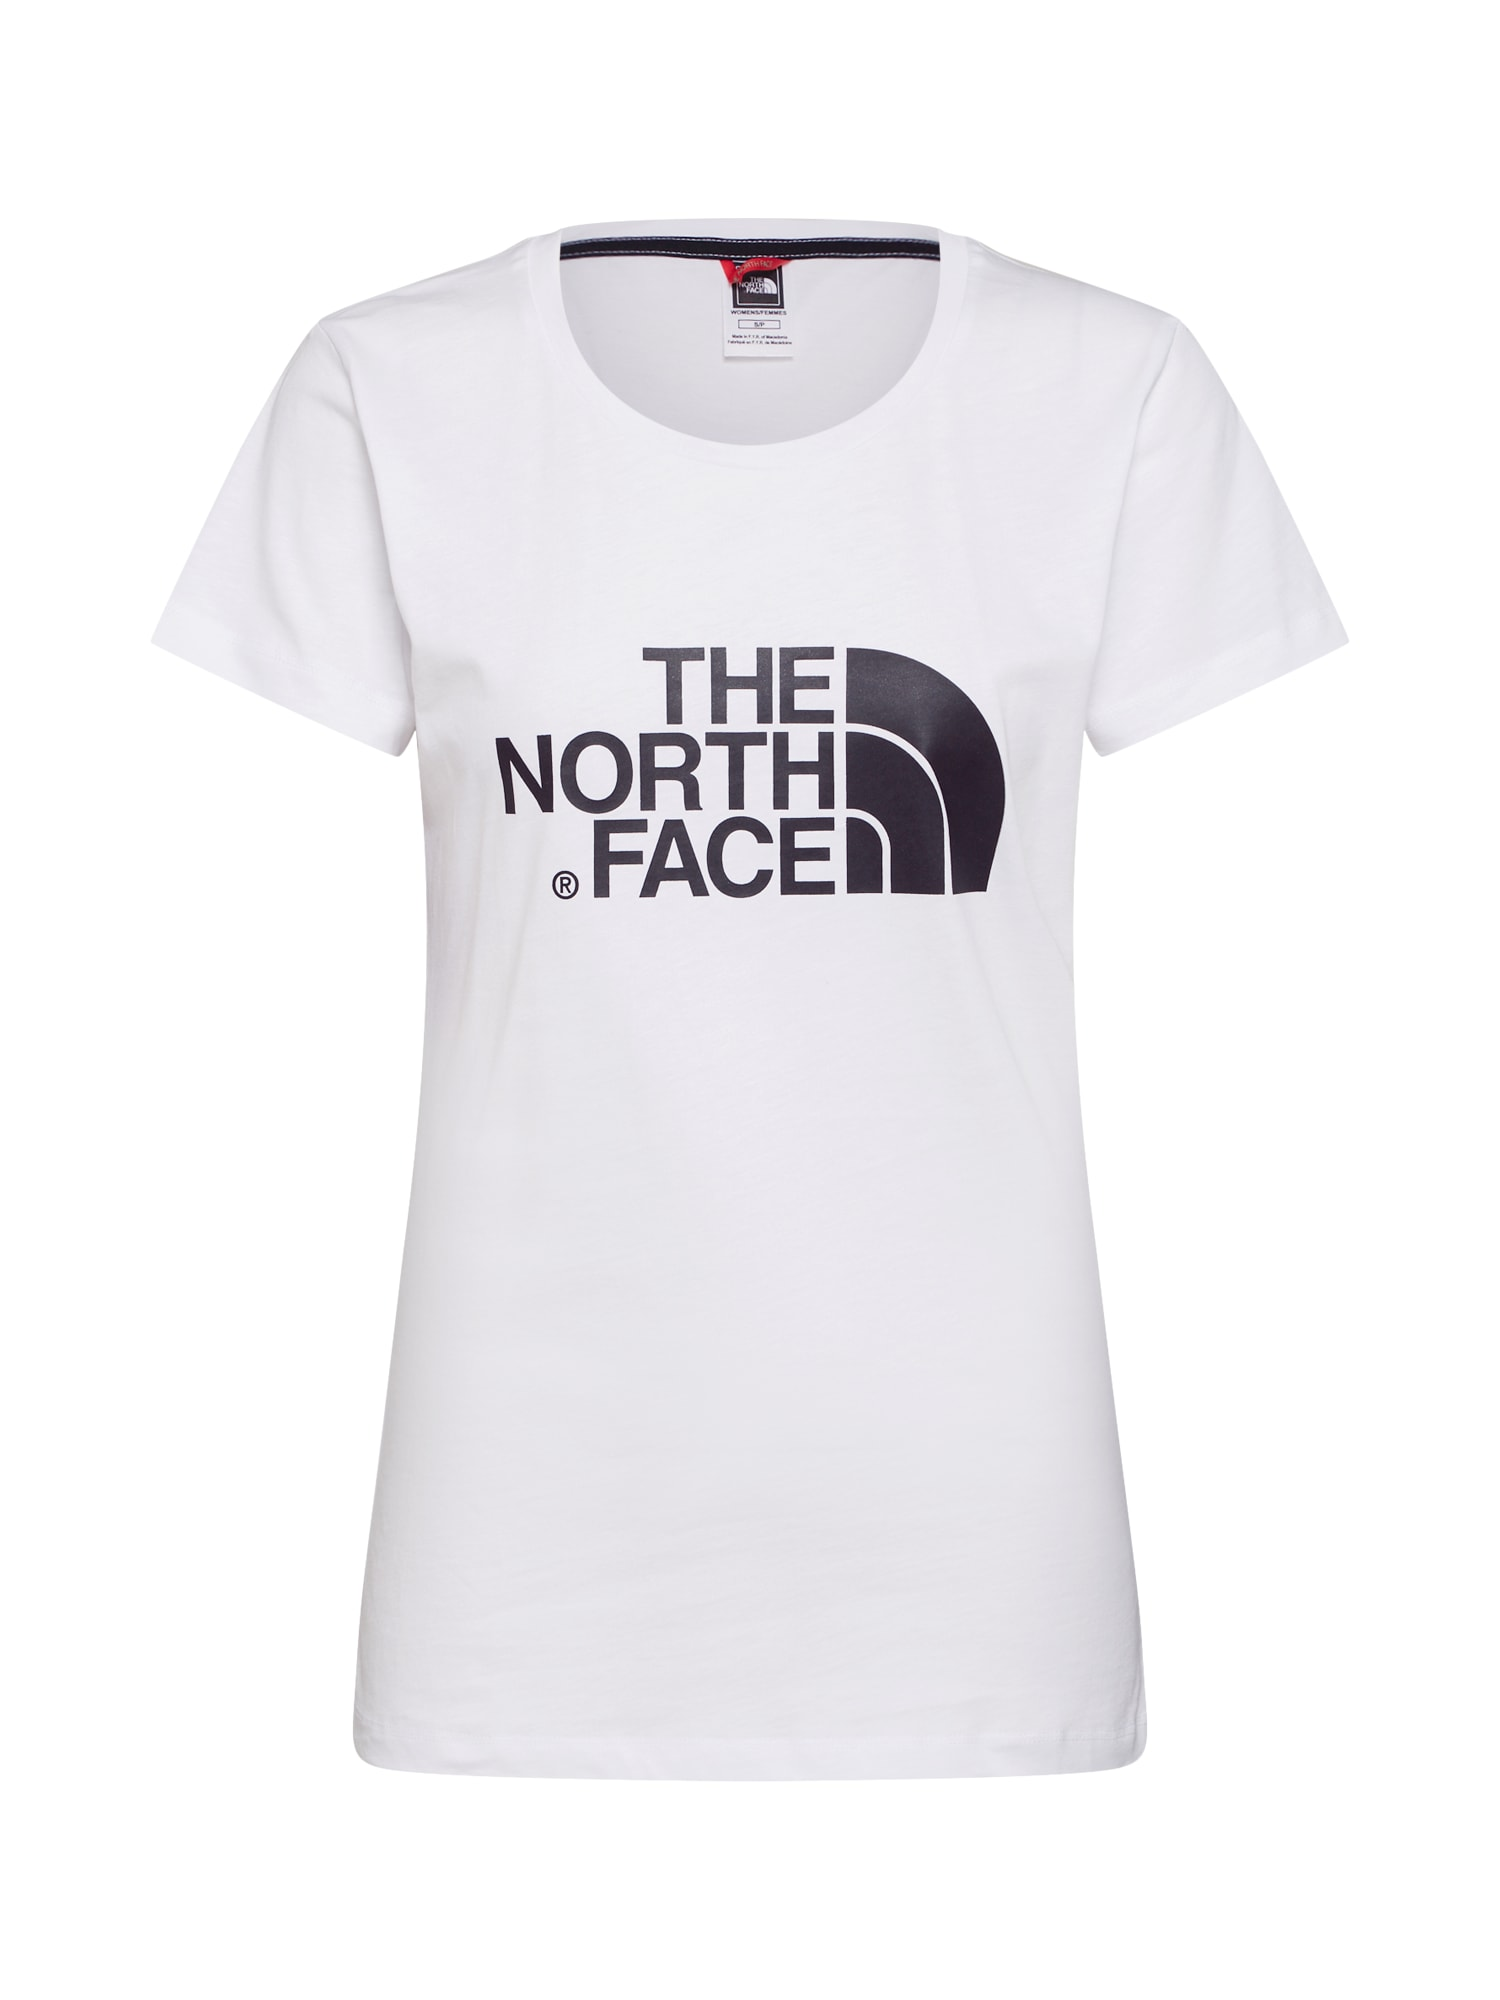 THE NORTH FACE Tričko 'S/S Easy Tee'  biela